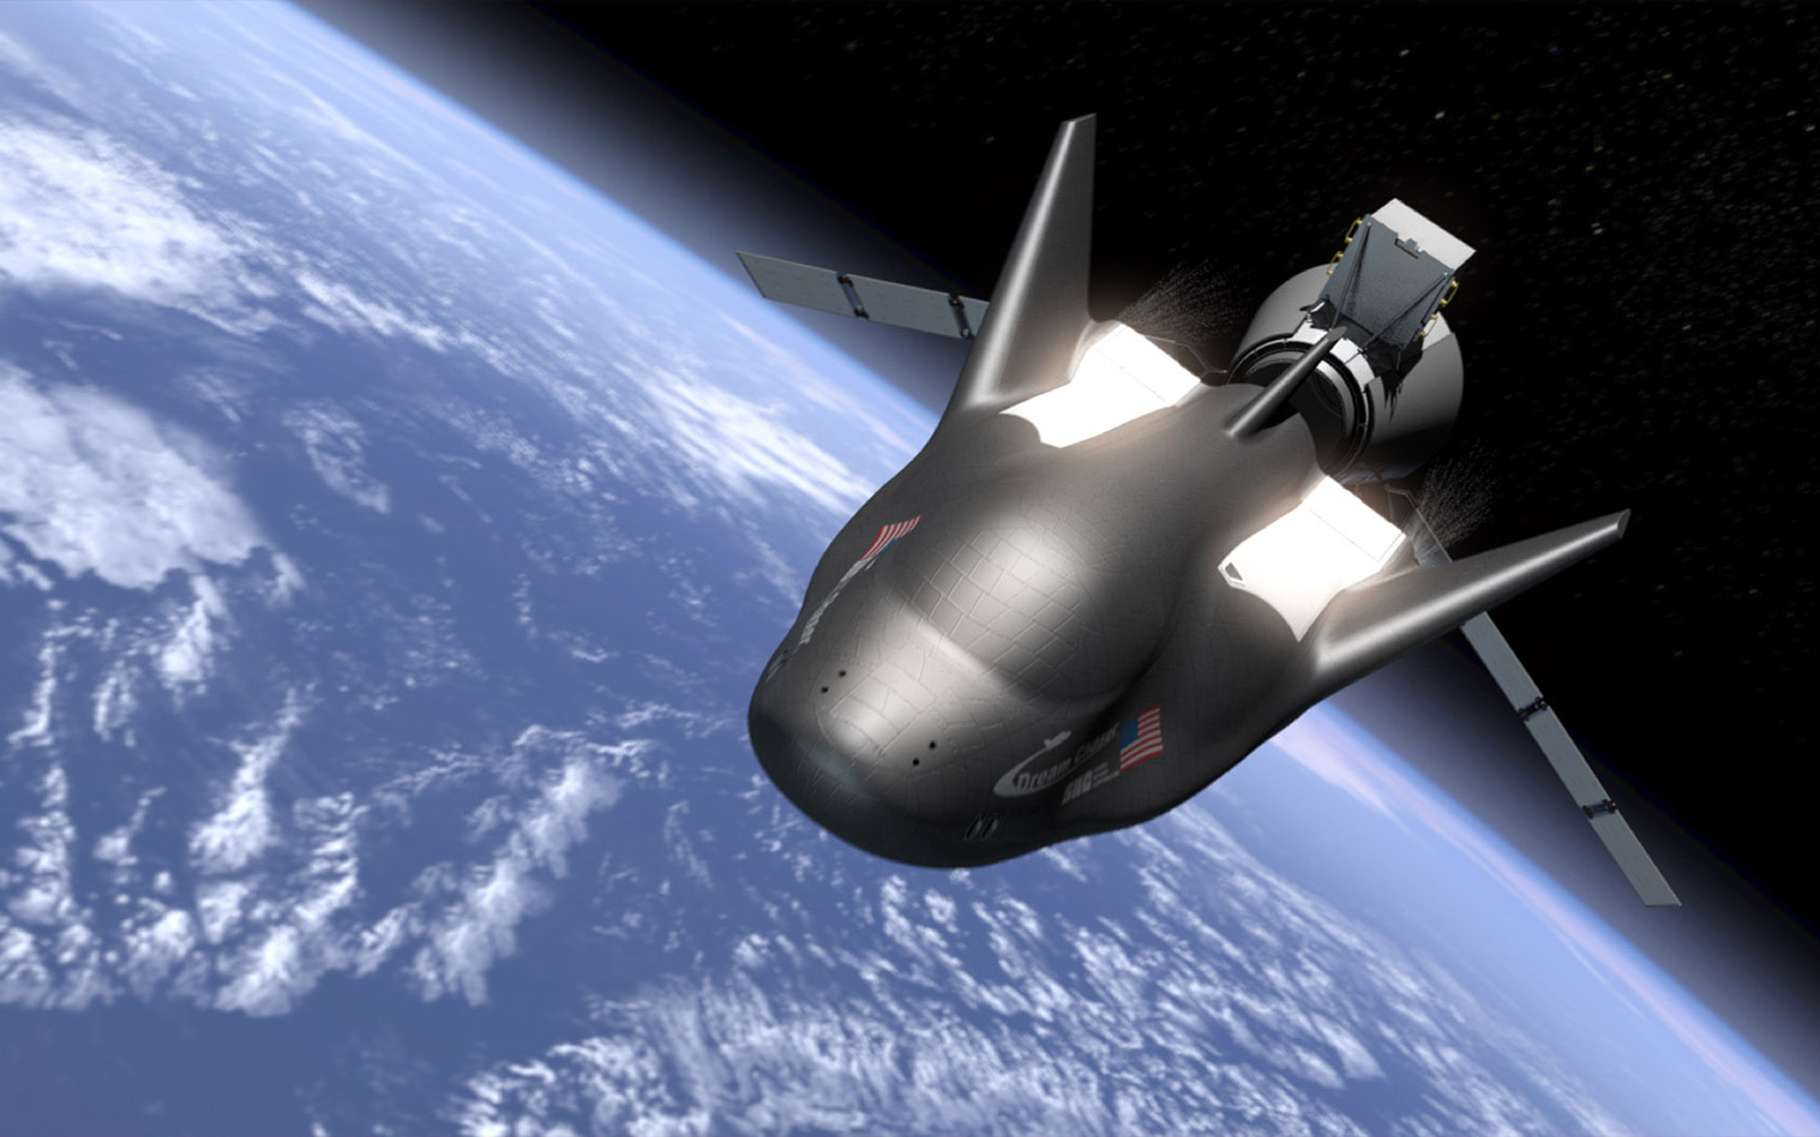 Le Dream Chaser dans sa version transport de fret pour répondre aux besoins de la Nasa pour la fourniture d'un service de fret à destination et en provenance de la Station spatiale internationale. © Sierra Nevada